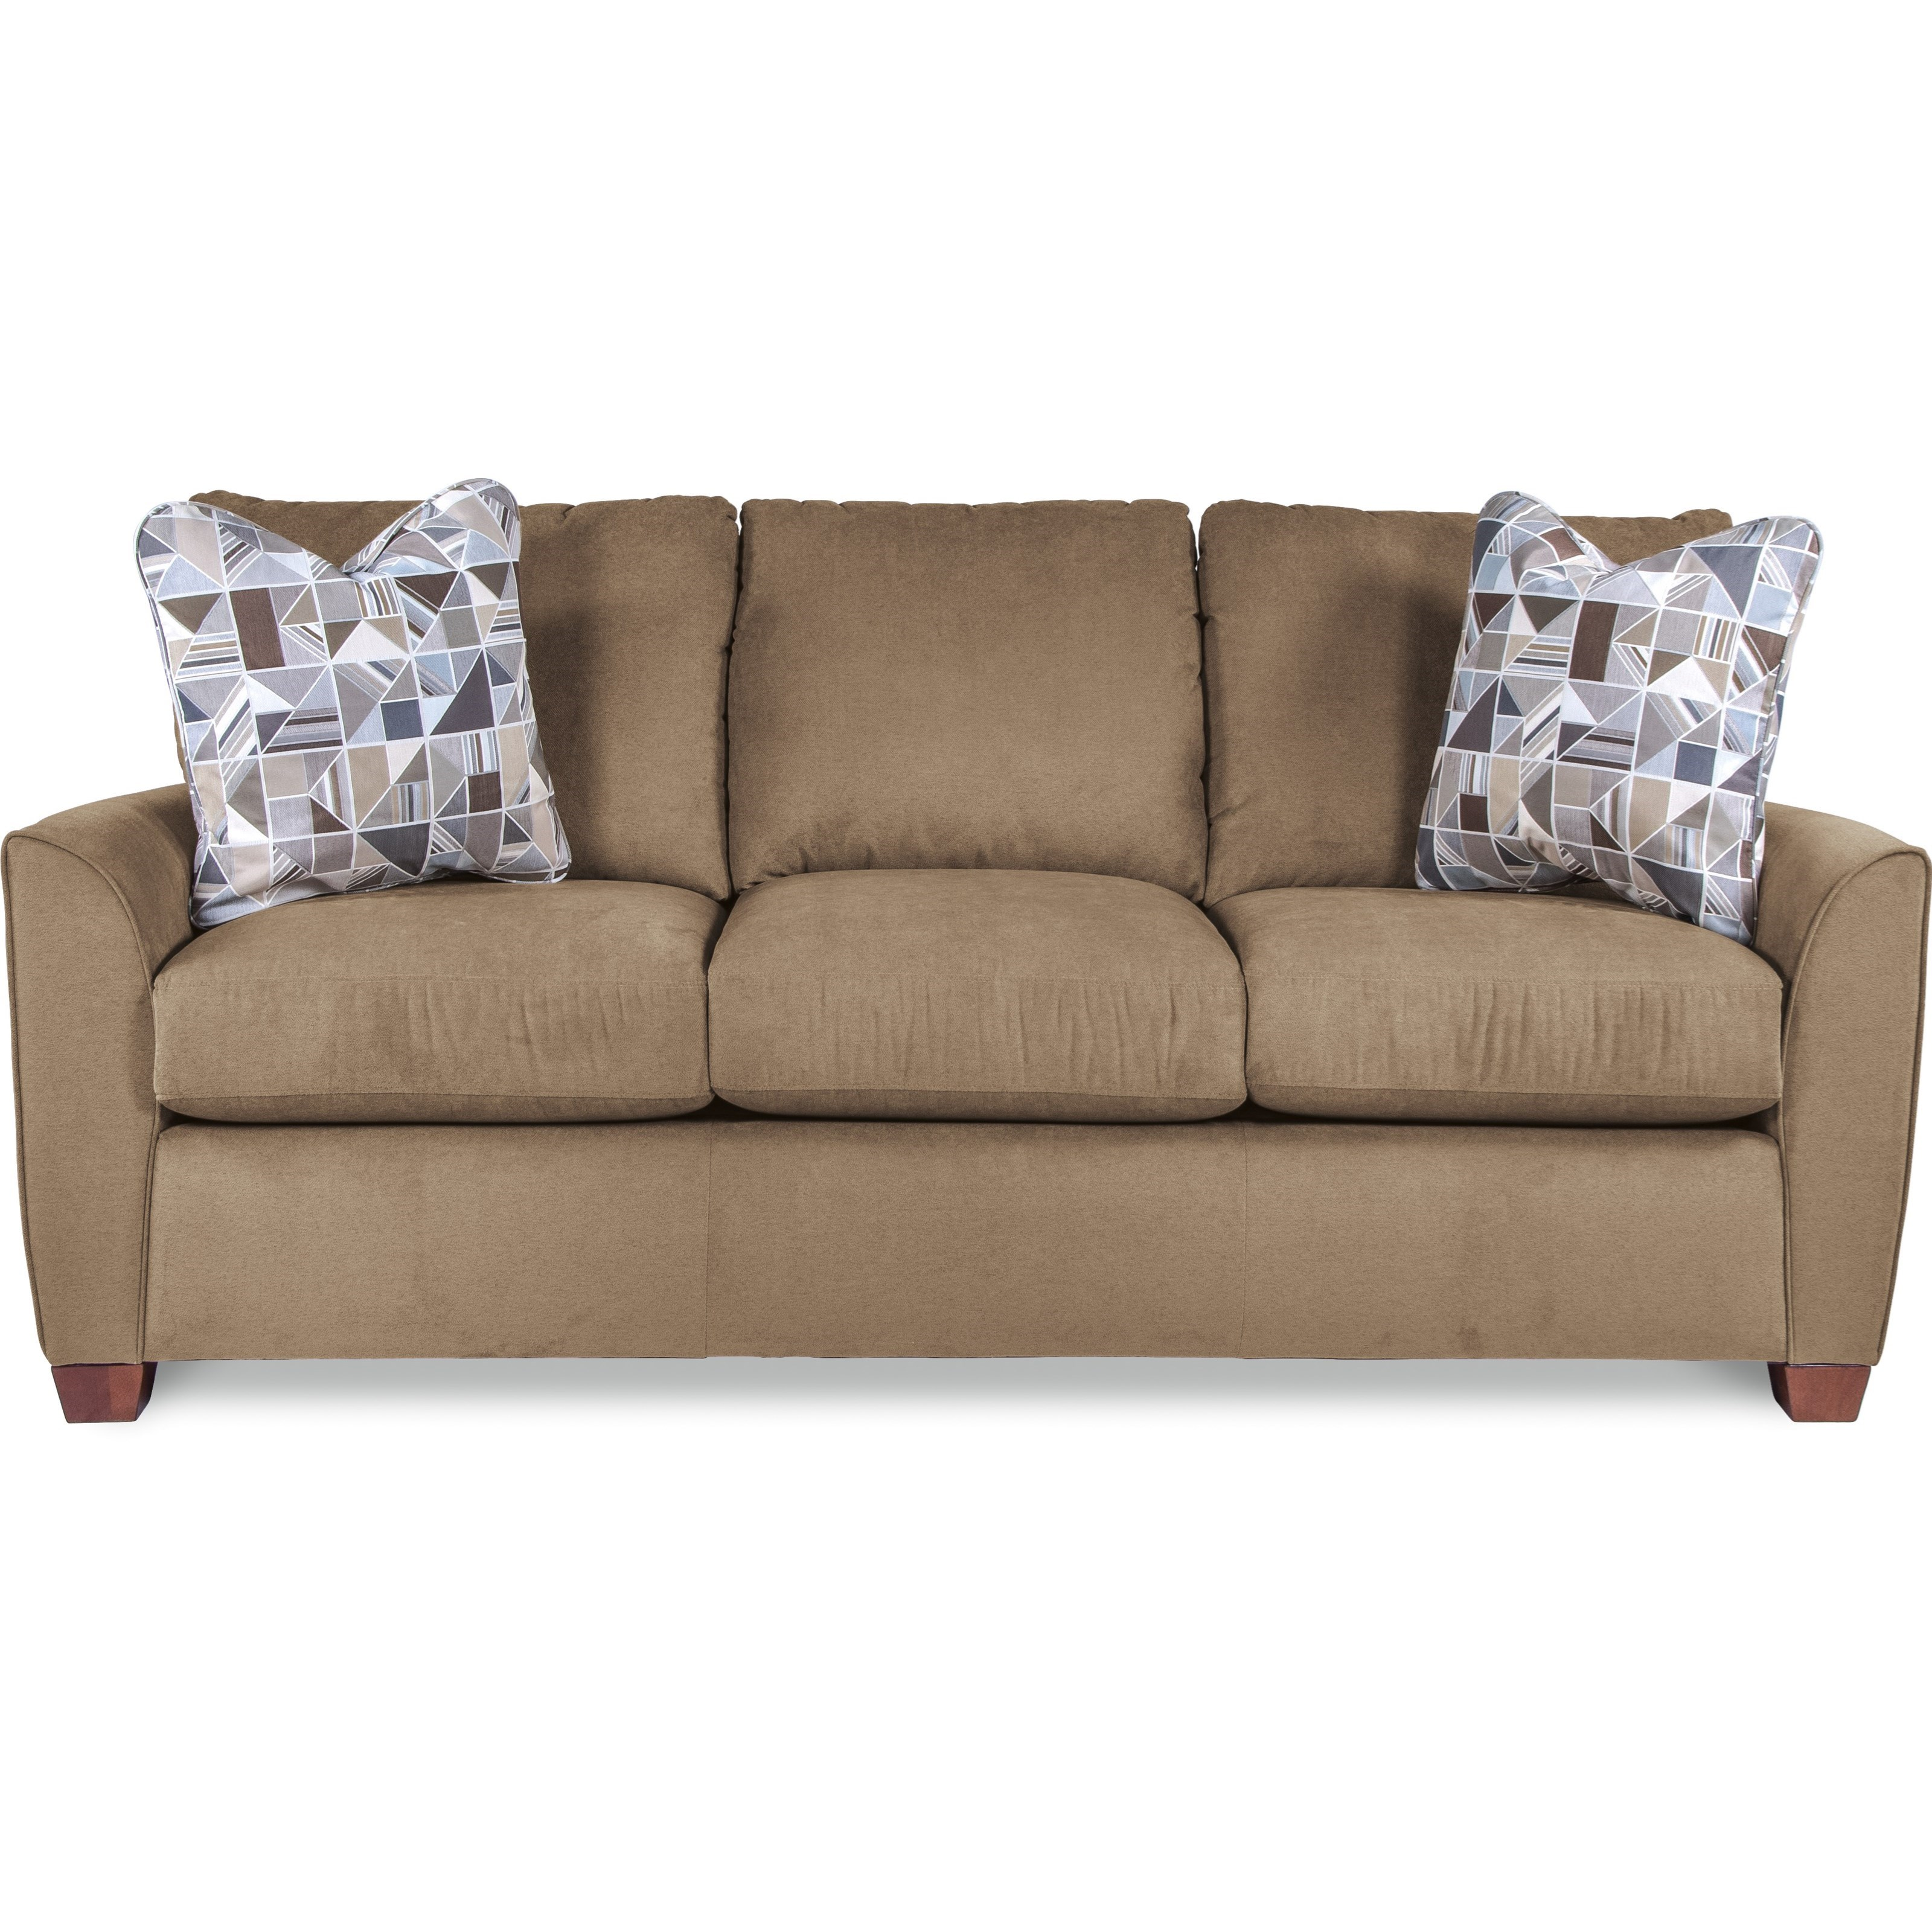 Amy La-Z-Boy® Premier Sofa by La-Z-Boy at Houston's Yuma Furniture